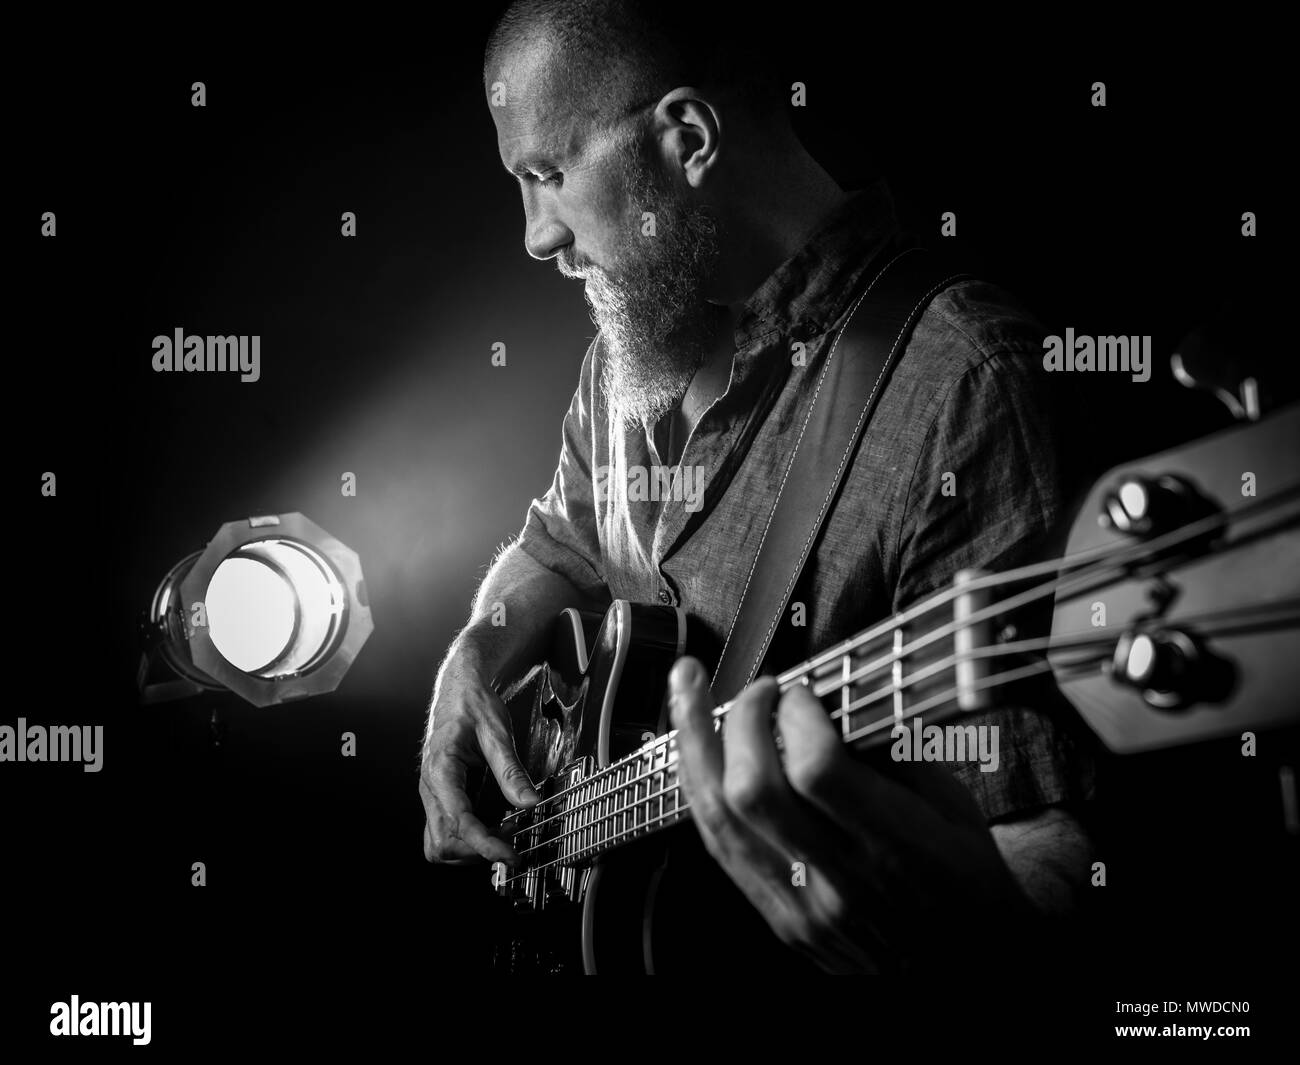 Photo of a bearded man playing bass guitar on stage in front of spotlights. - Stock Image